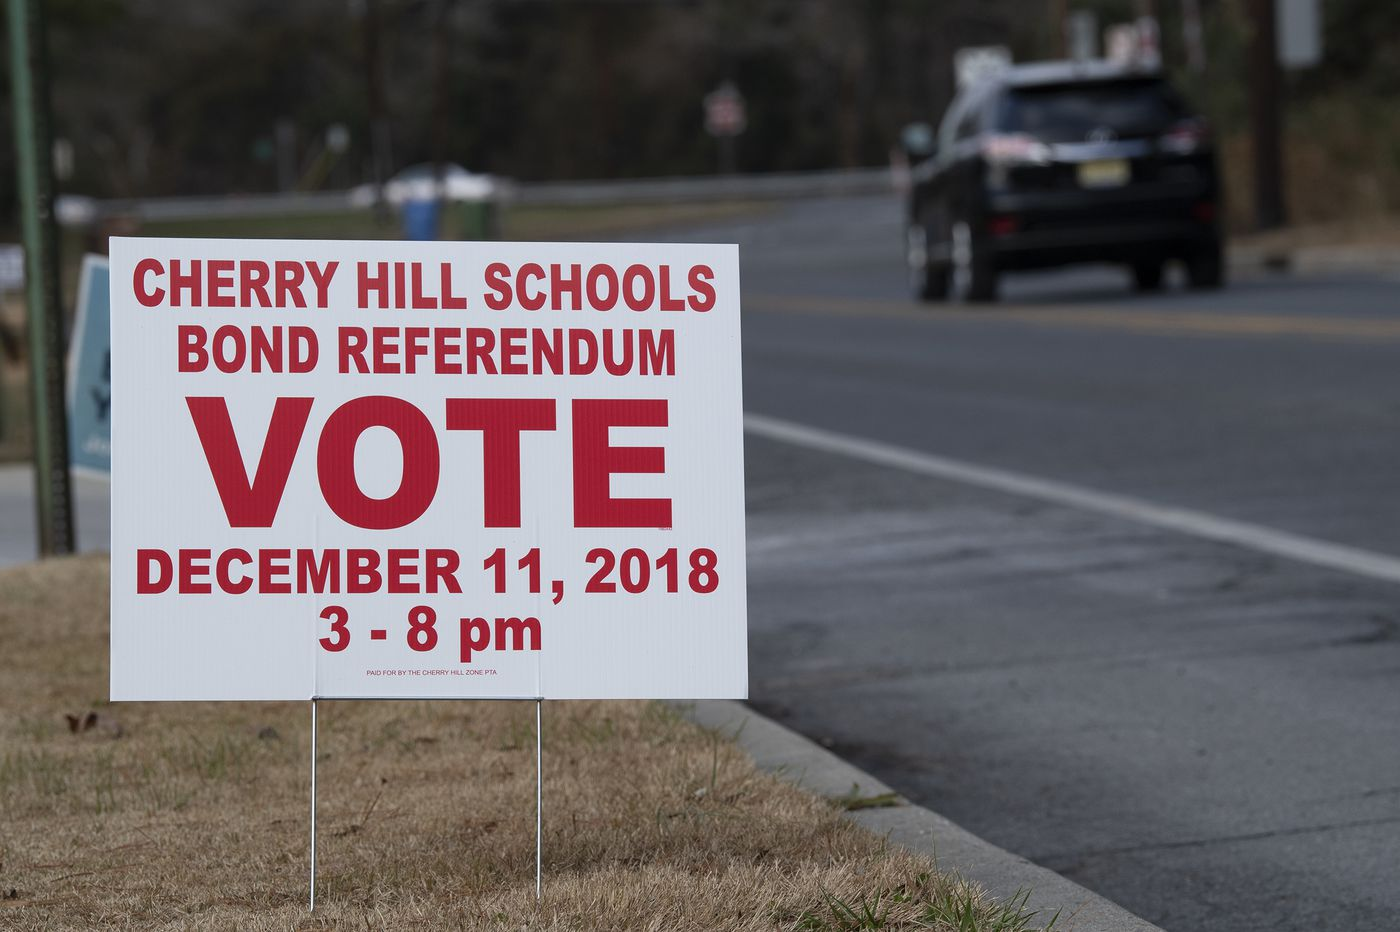 Cherry Hill voters to consider $210.7 million school bond, largest in New Jersey